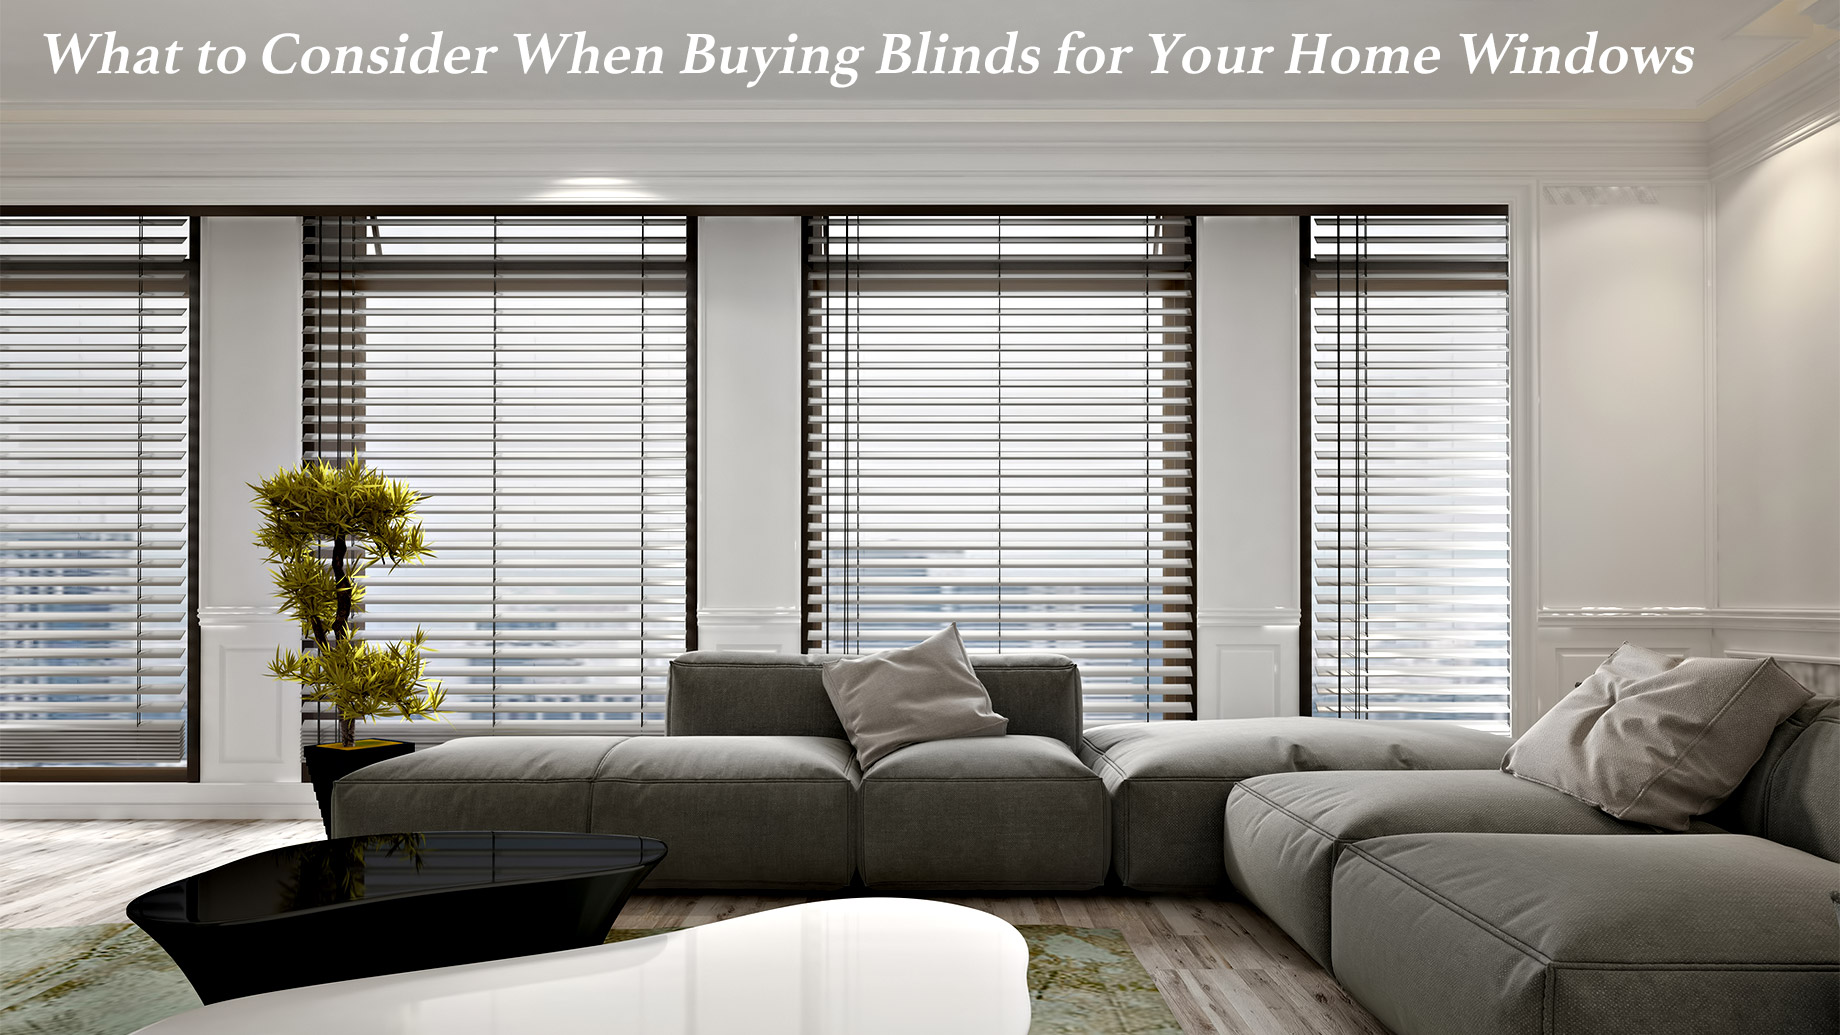 What to Consider When Buying Blinds for Your Home Windows